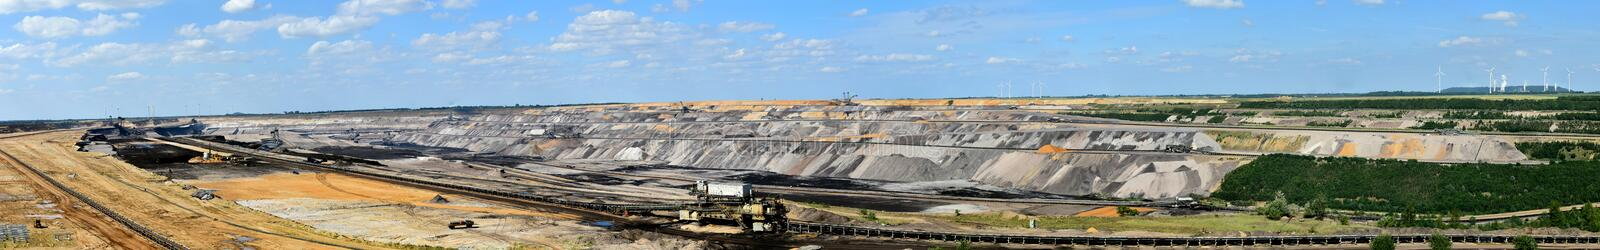 Brown coal opencast mining. Opencast mining in Garzweiler, Germany, panoramic view royalty free stock photography